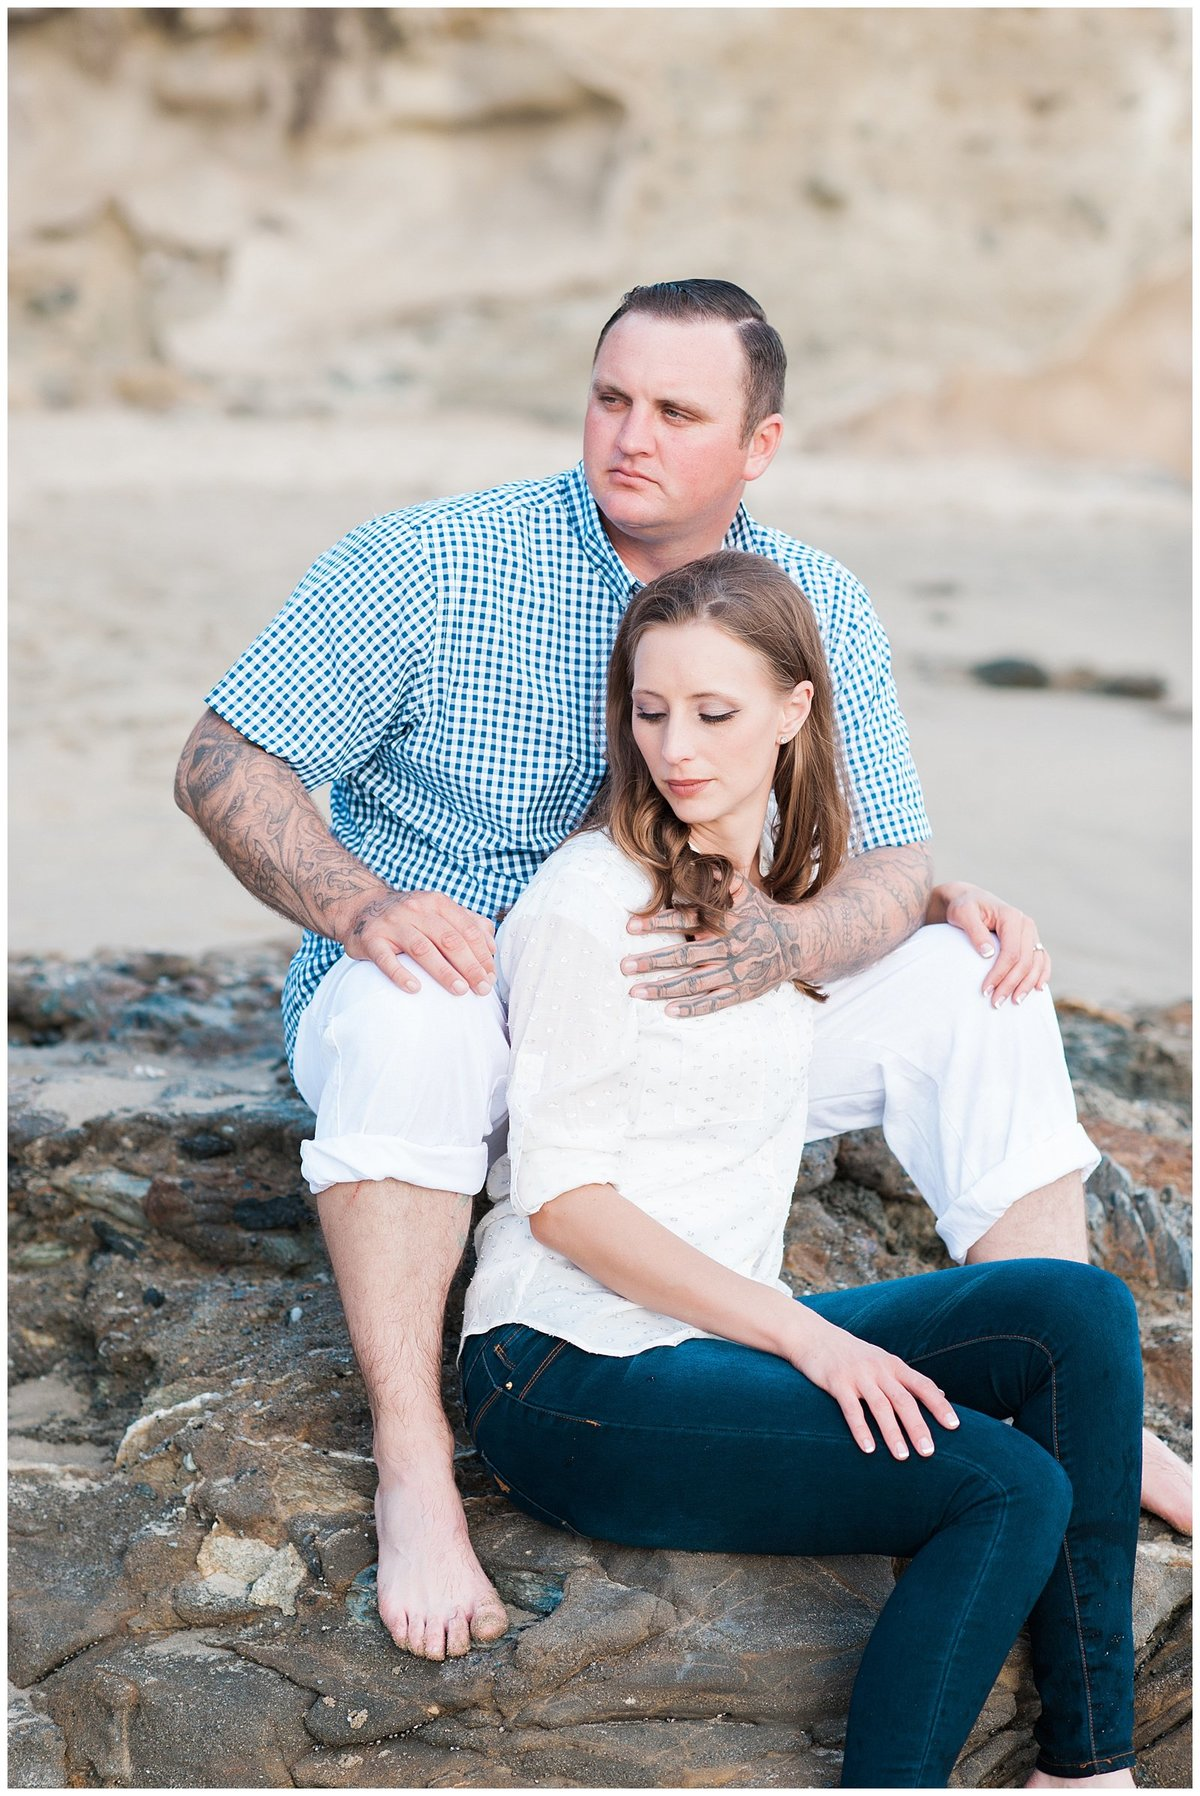 Laguna beach canyon engagement photographer wedding photo010